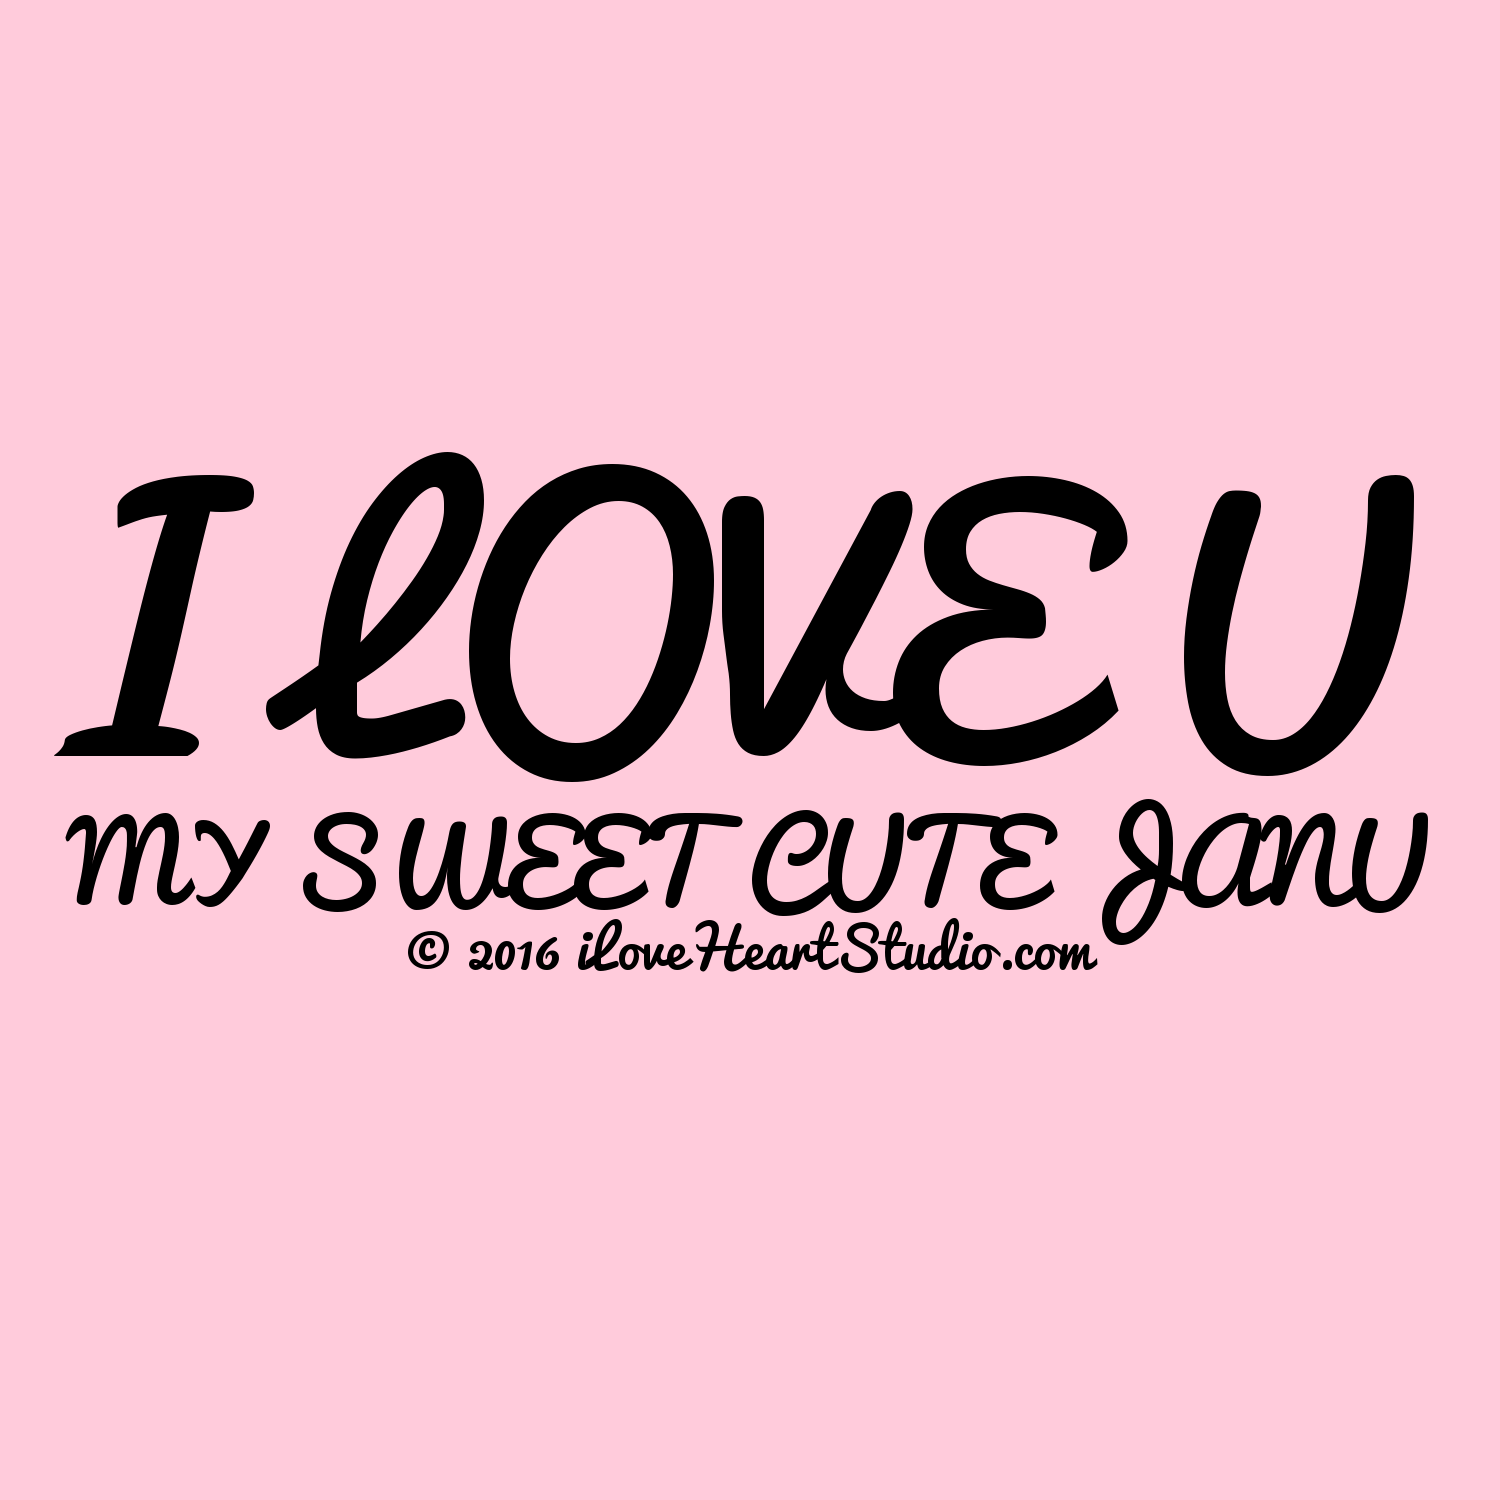 I Love U Janu Wallpaper : I love u janu wallpapers